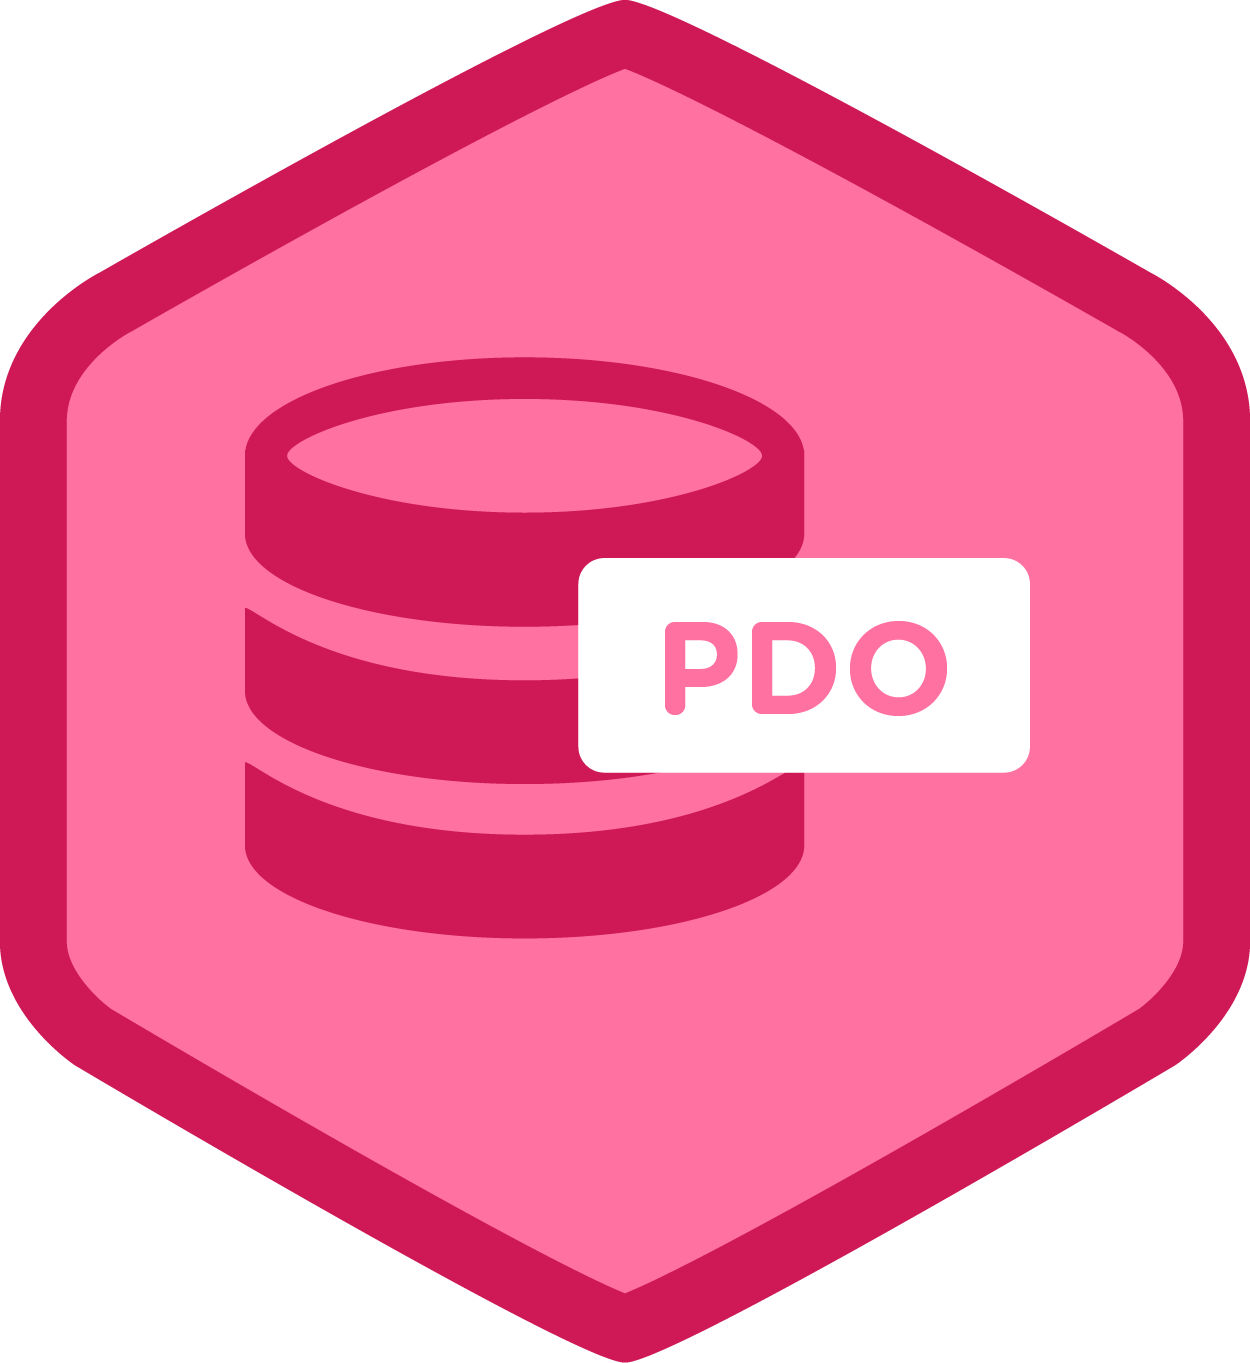 Getting Started with PDO